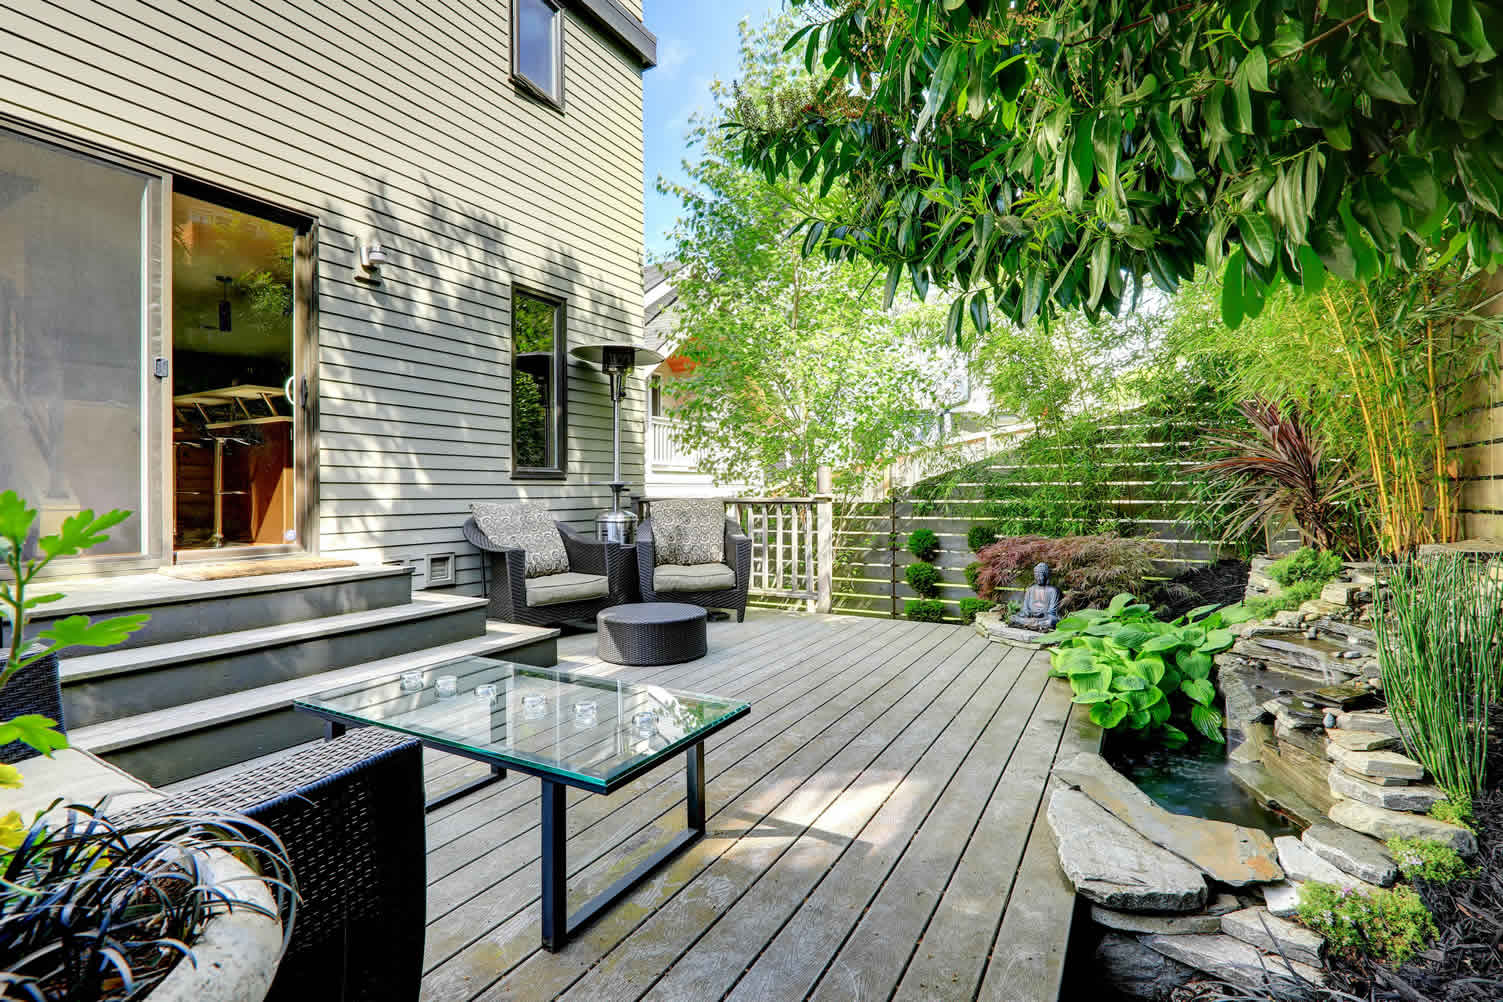 ways to improve residential landscape